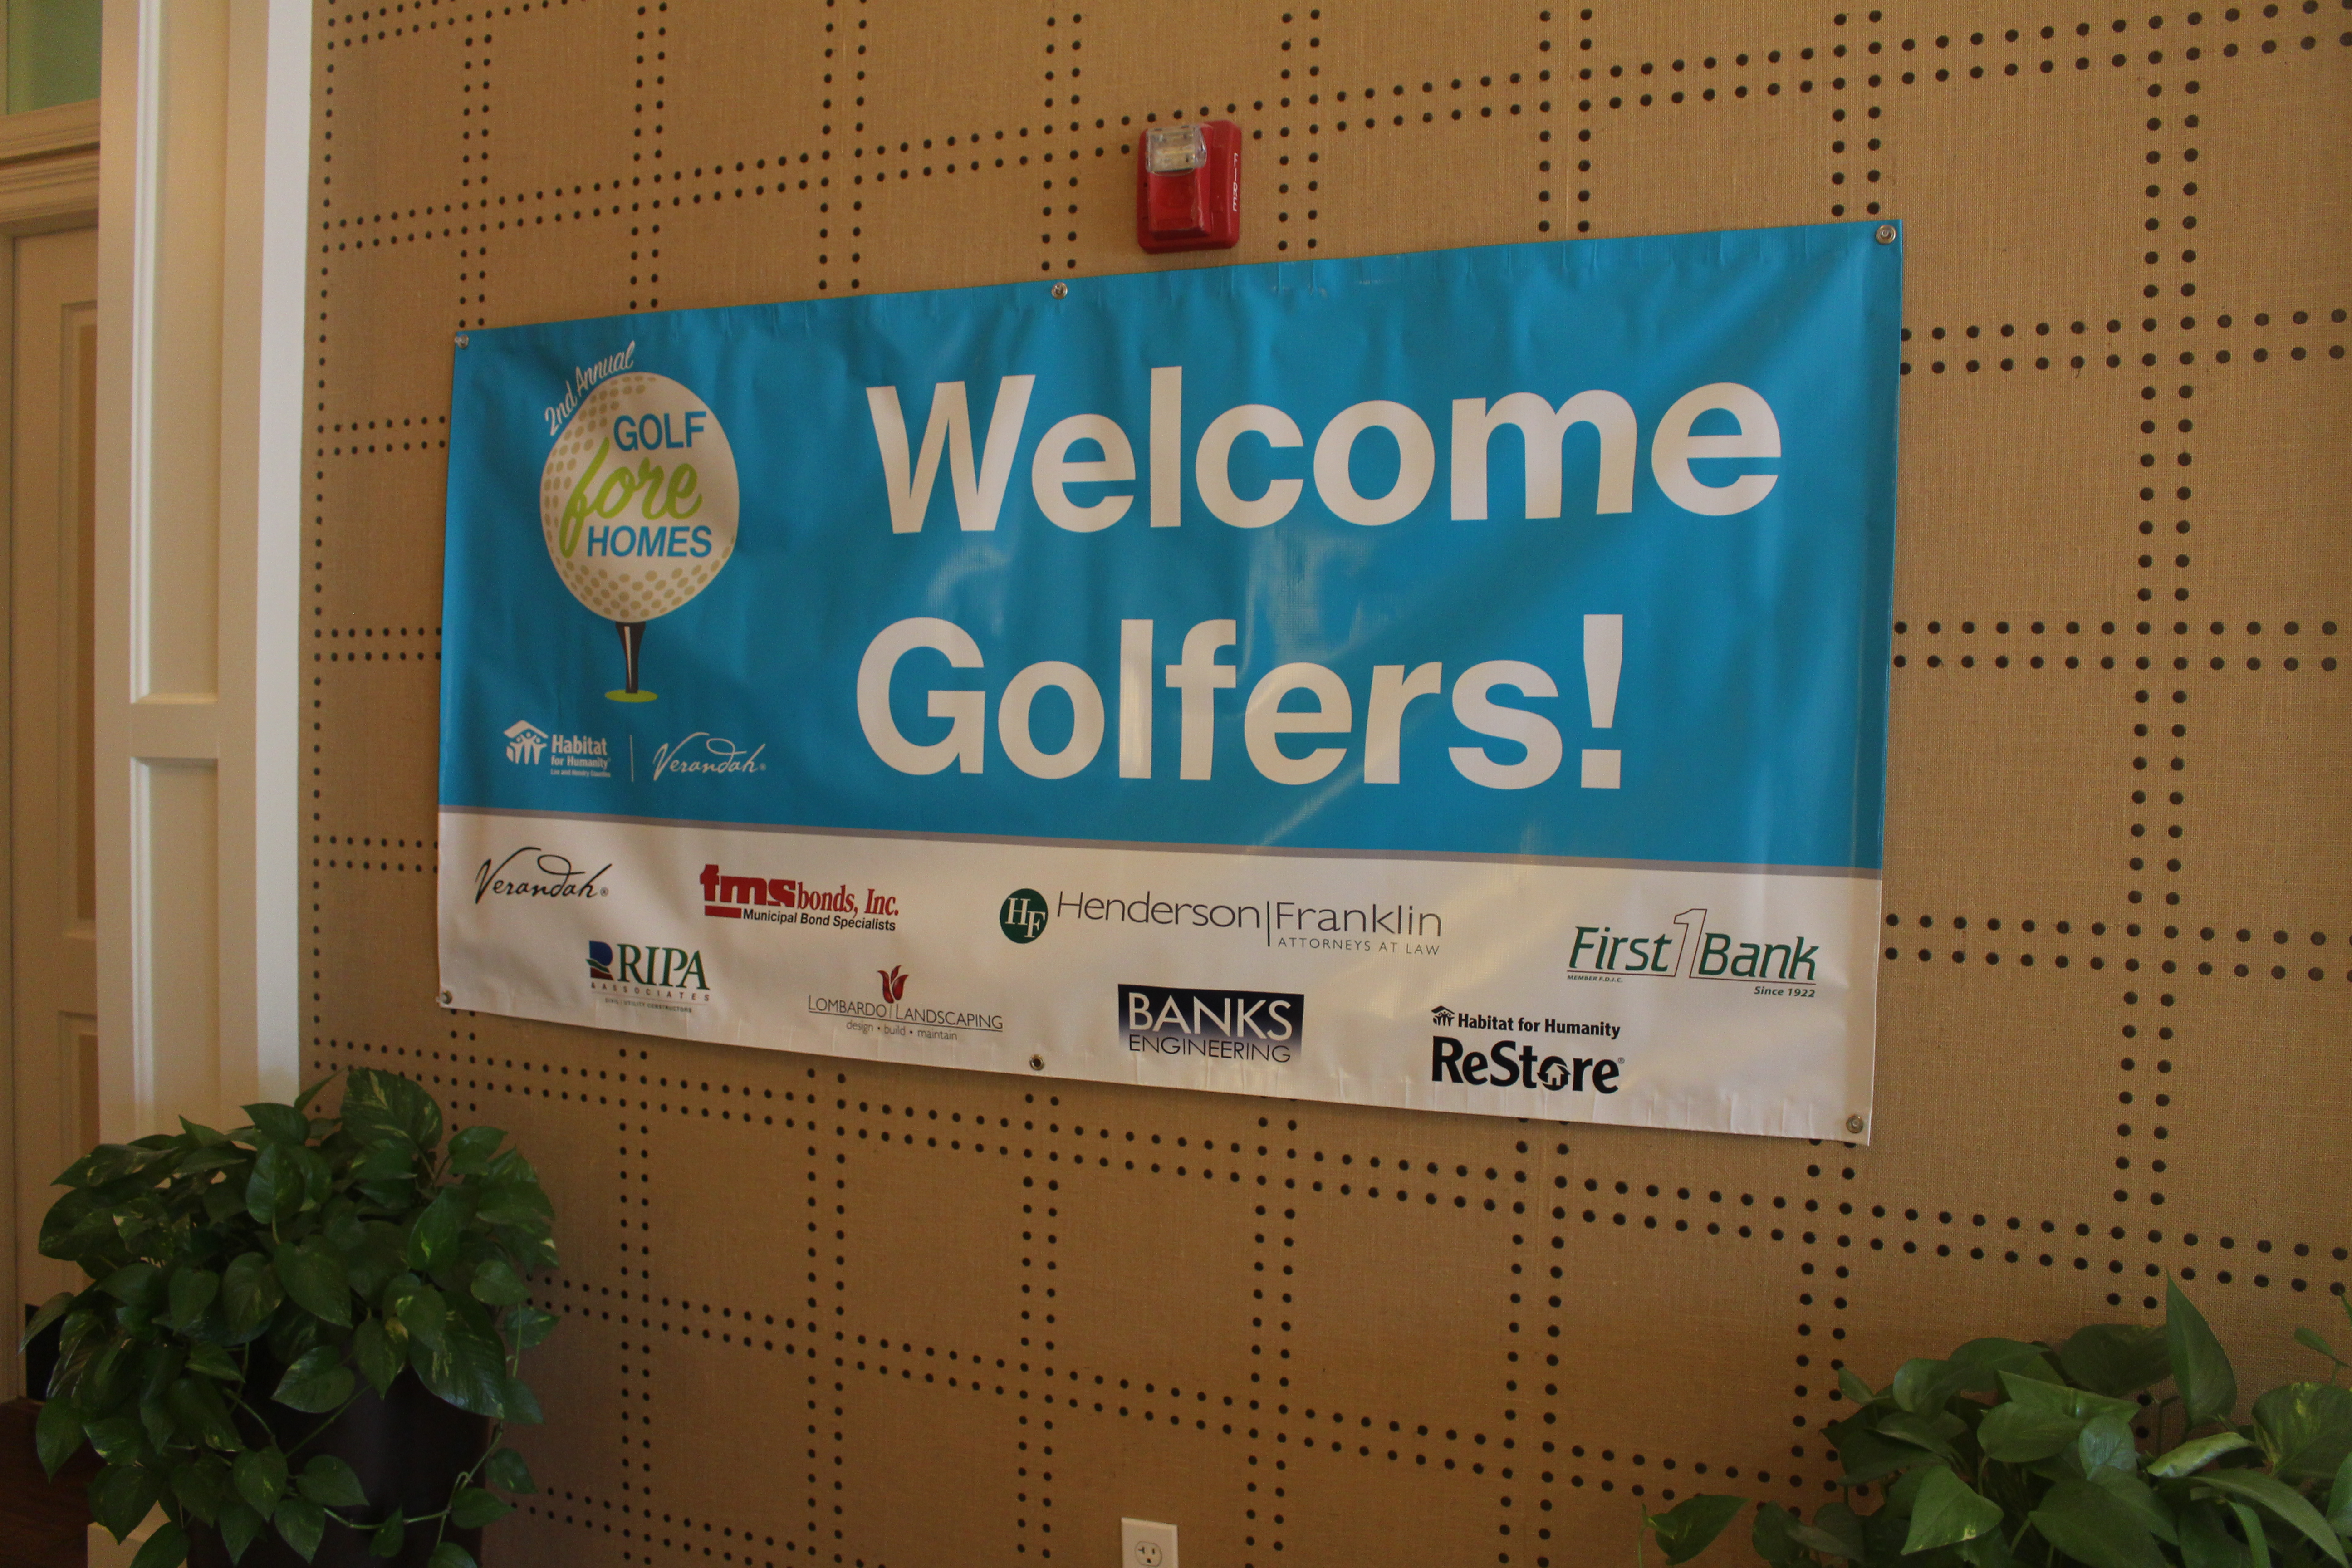 Golf Fore Homes gallery image #1